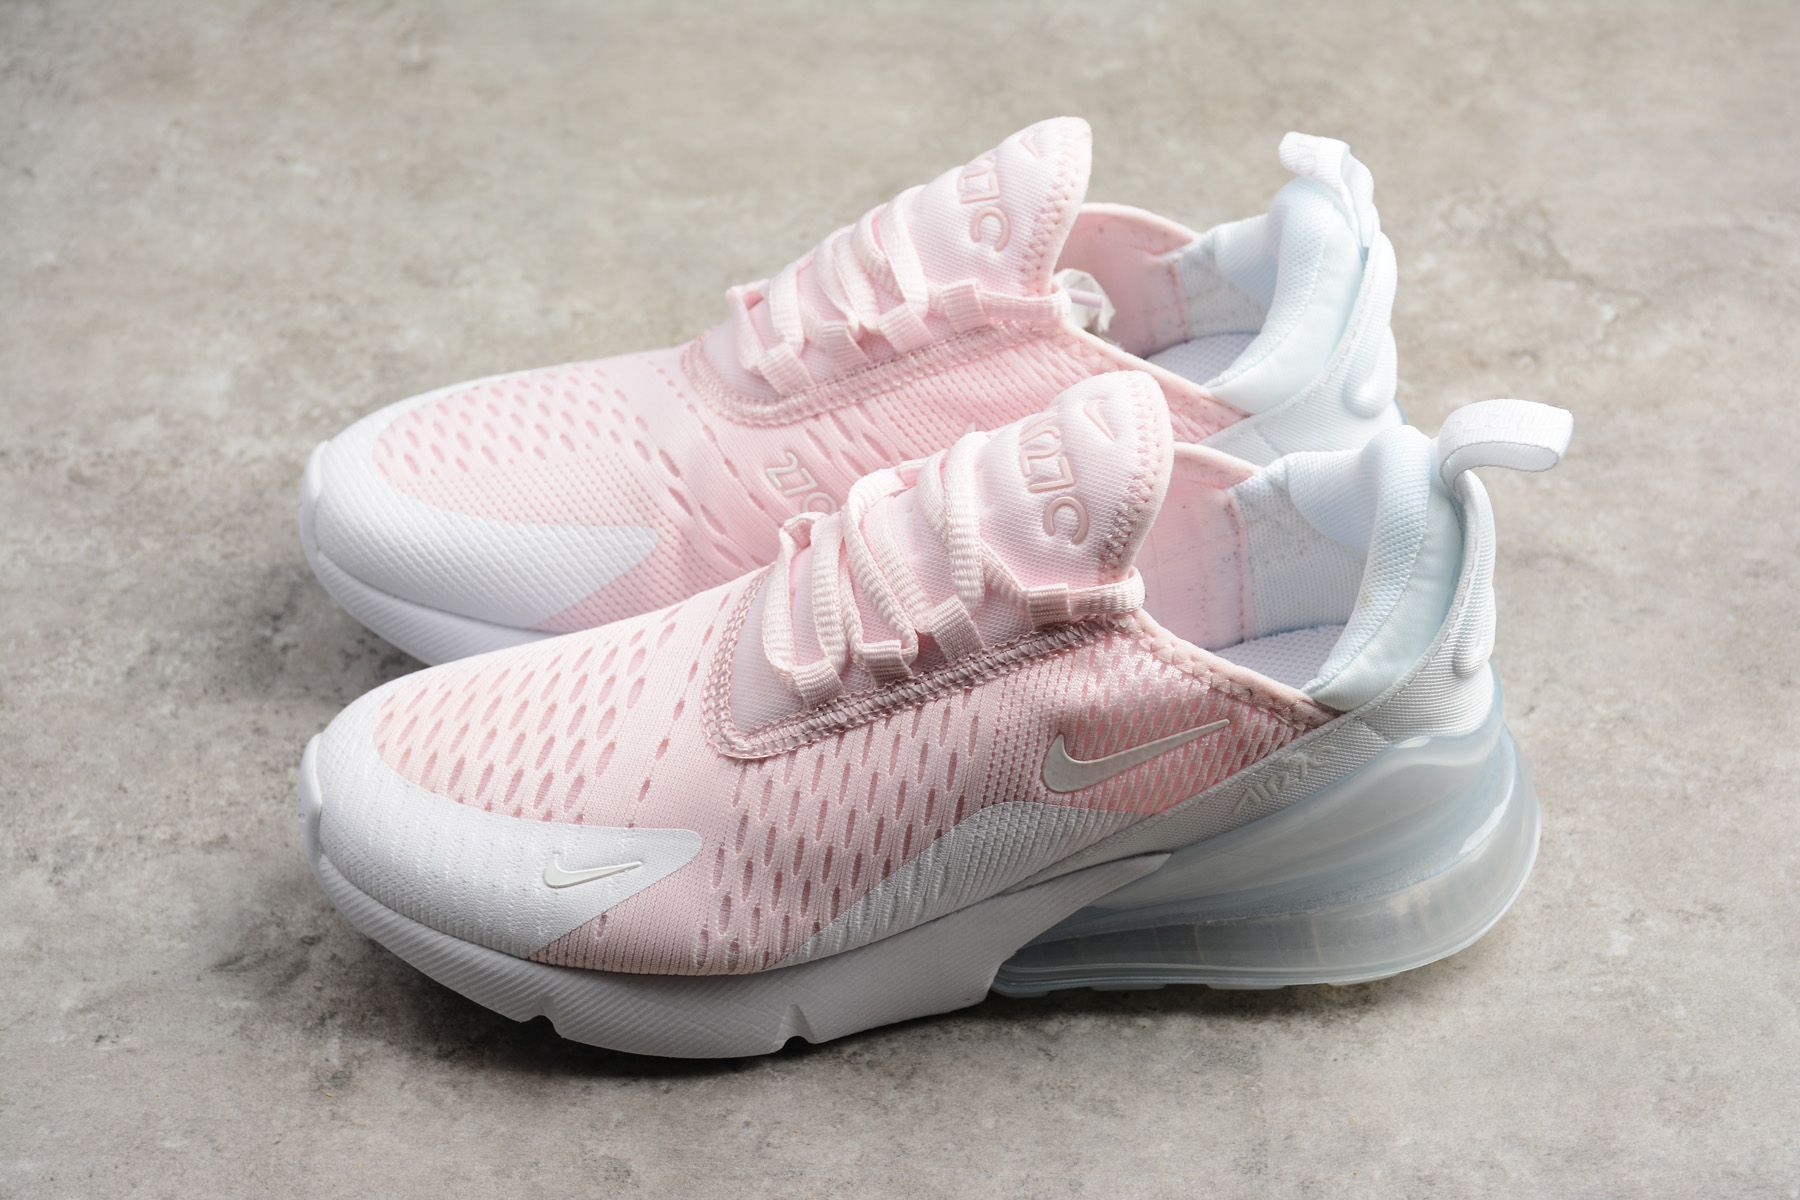 7f514dd1cd27 ... where can i buy wmns nike air max 270 particle rose celestial teal  white ah6789 602